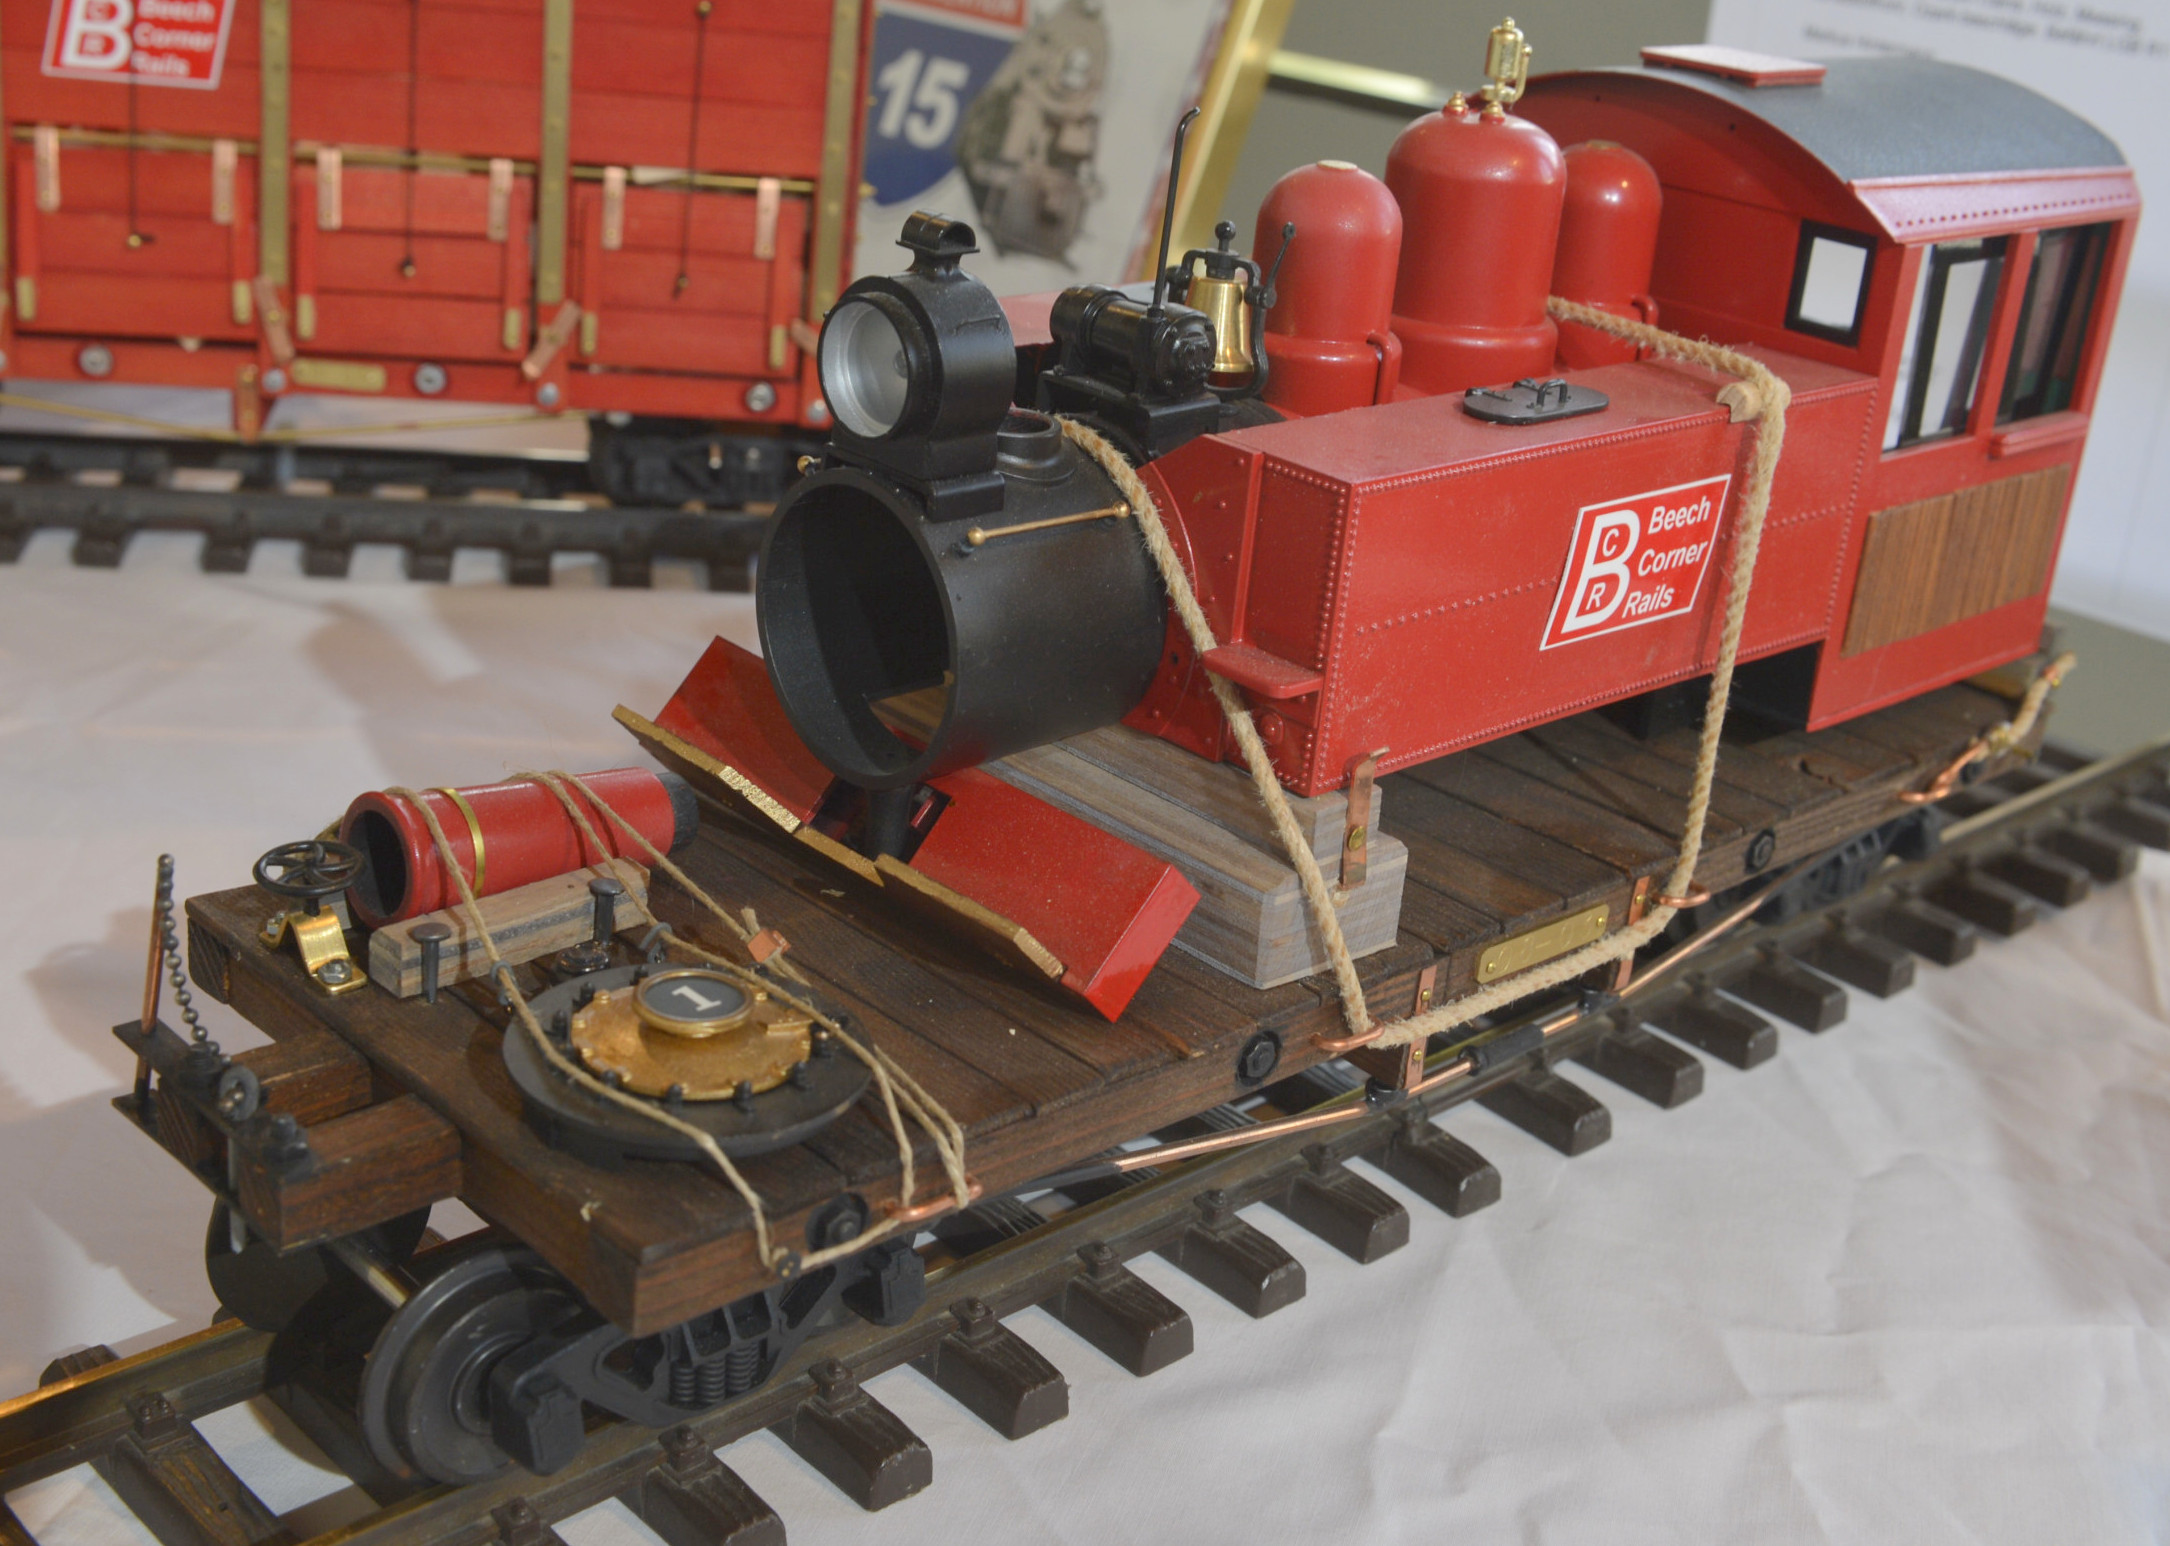 M hintermann G scale bild 010